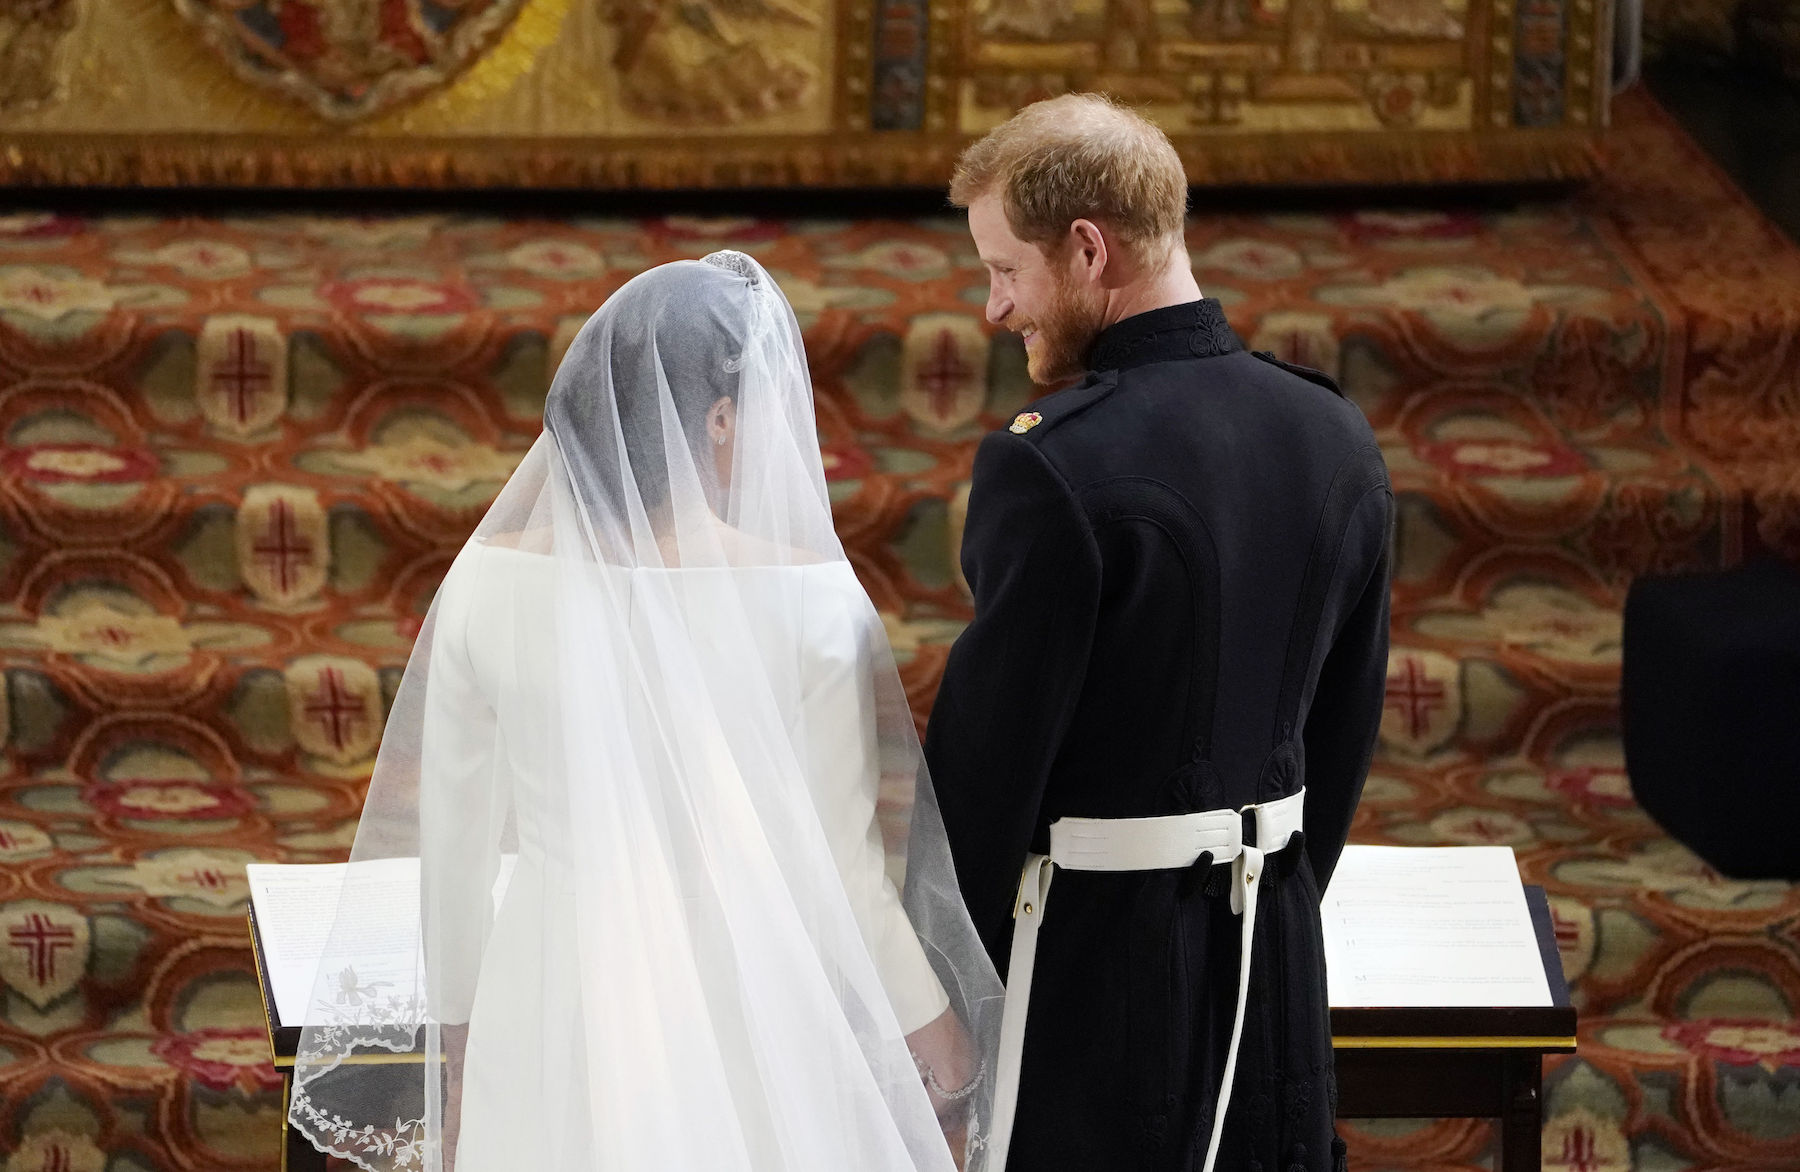 "<div class=""meta image-caption""><div class=""origin-logo origin-image wls""><span>wls</span></div><span class=""caption-text"">Britain's Prince Harry, Duke of Sussex (R) stands with US actress Meghan Markle (L) at the altar in St George's Chapel, Windsor Castle. (Owen Humphreys/AFP/Getty Images)</span></div>"